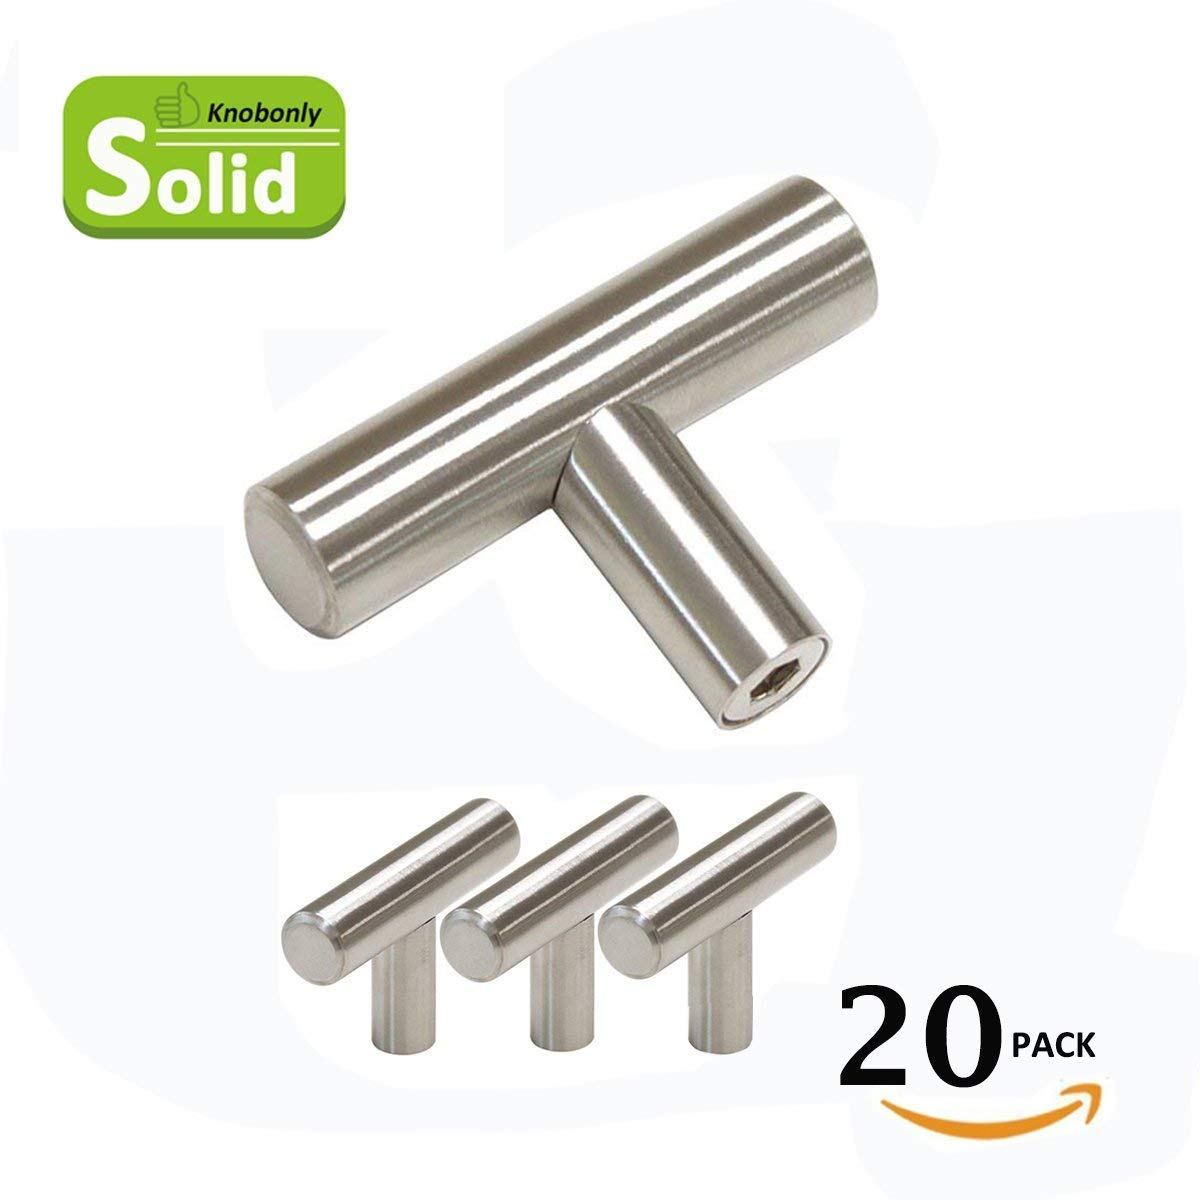 Knobonly 20pc SOLID Stainless Steel, Bar Handle Pull, Fine-Brushed Satin Nickel Finish | Kitchen Cabinet Hardware/Dresser Drawer Handles